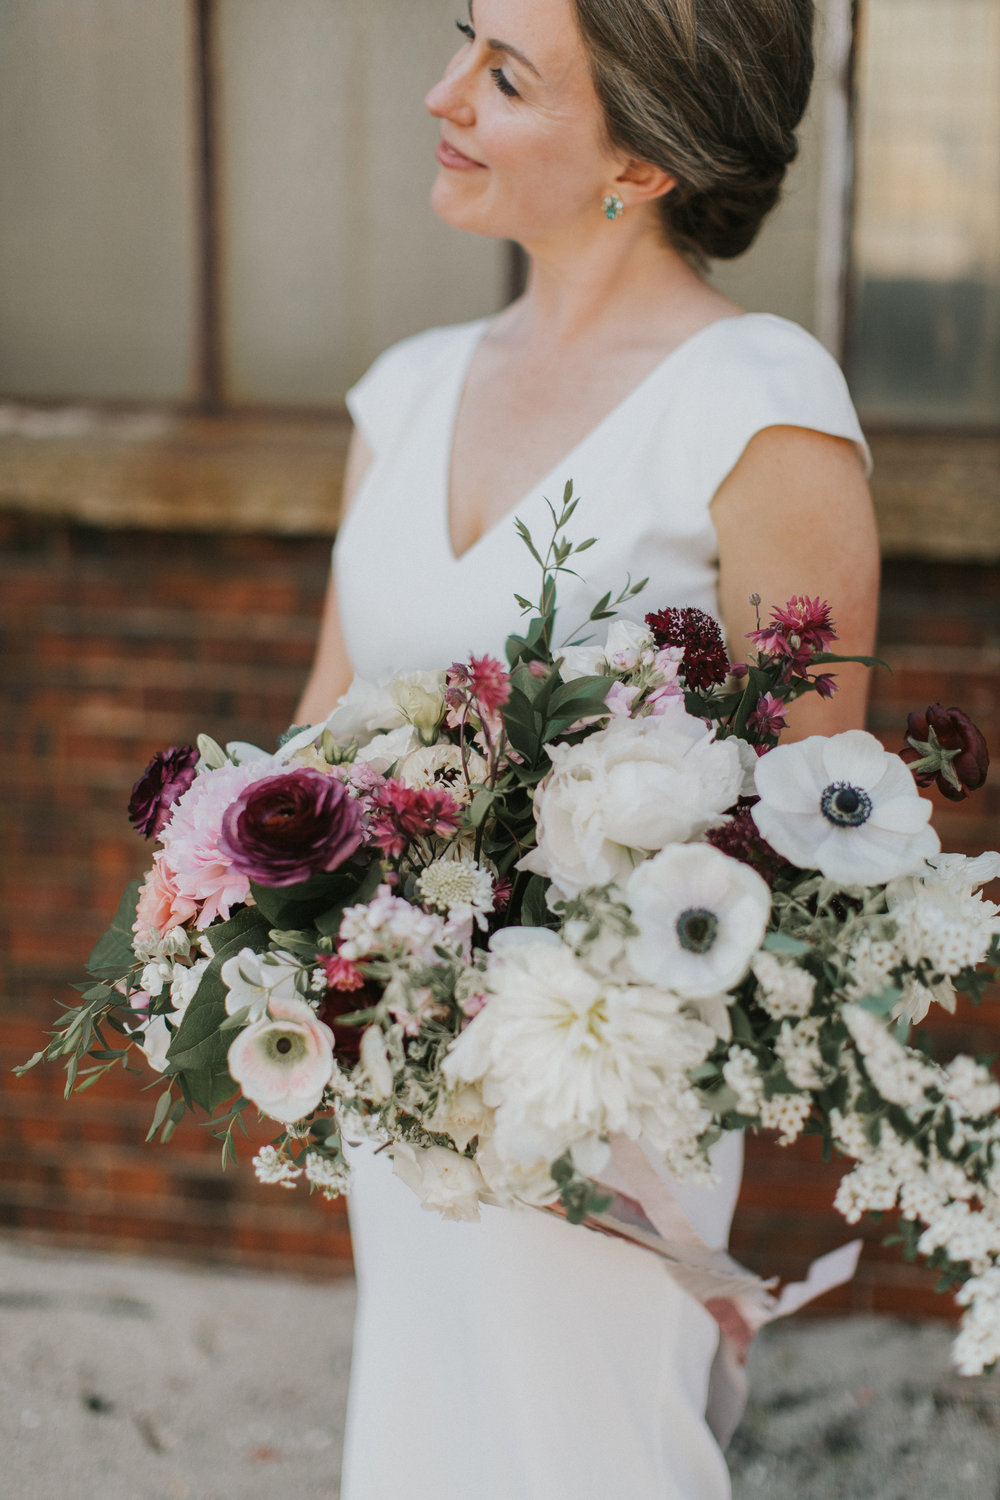 Watershed_Floral_Maine_Wedding_Florist_126.jpg